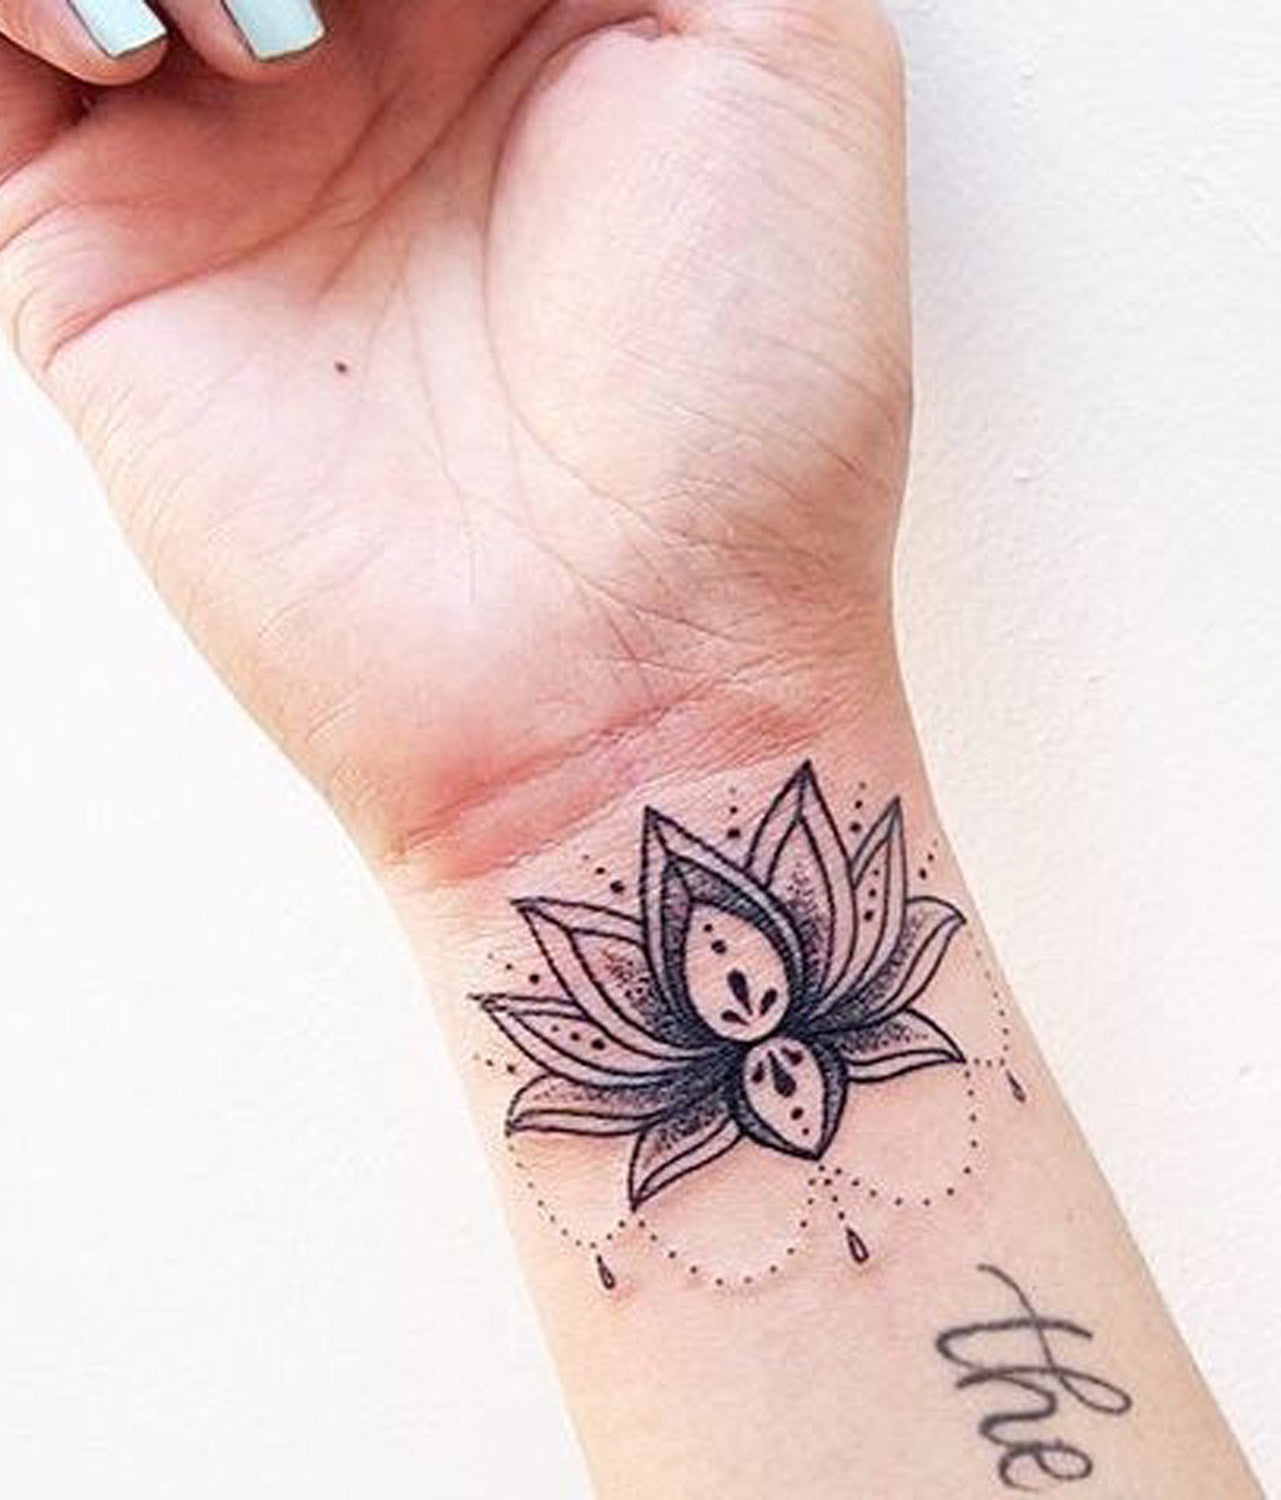 Large Black Lace Lotus Wrist Placement Tattoo Ideas at MyBodiArt.com